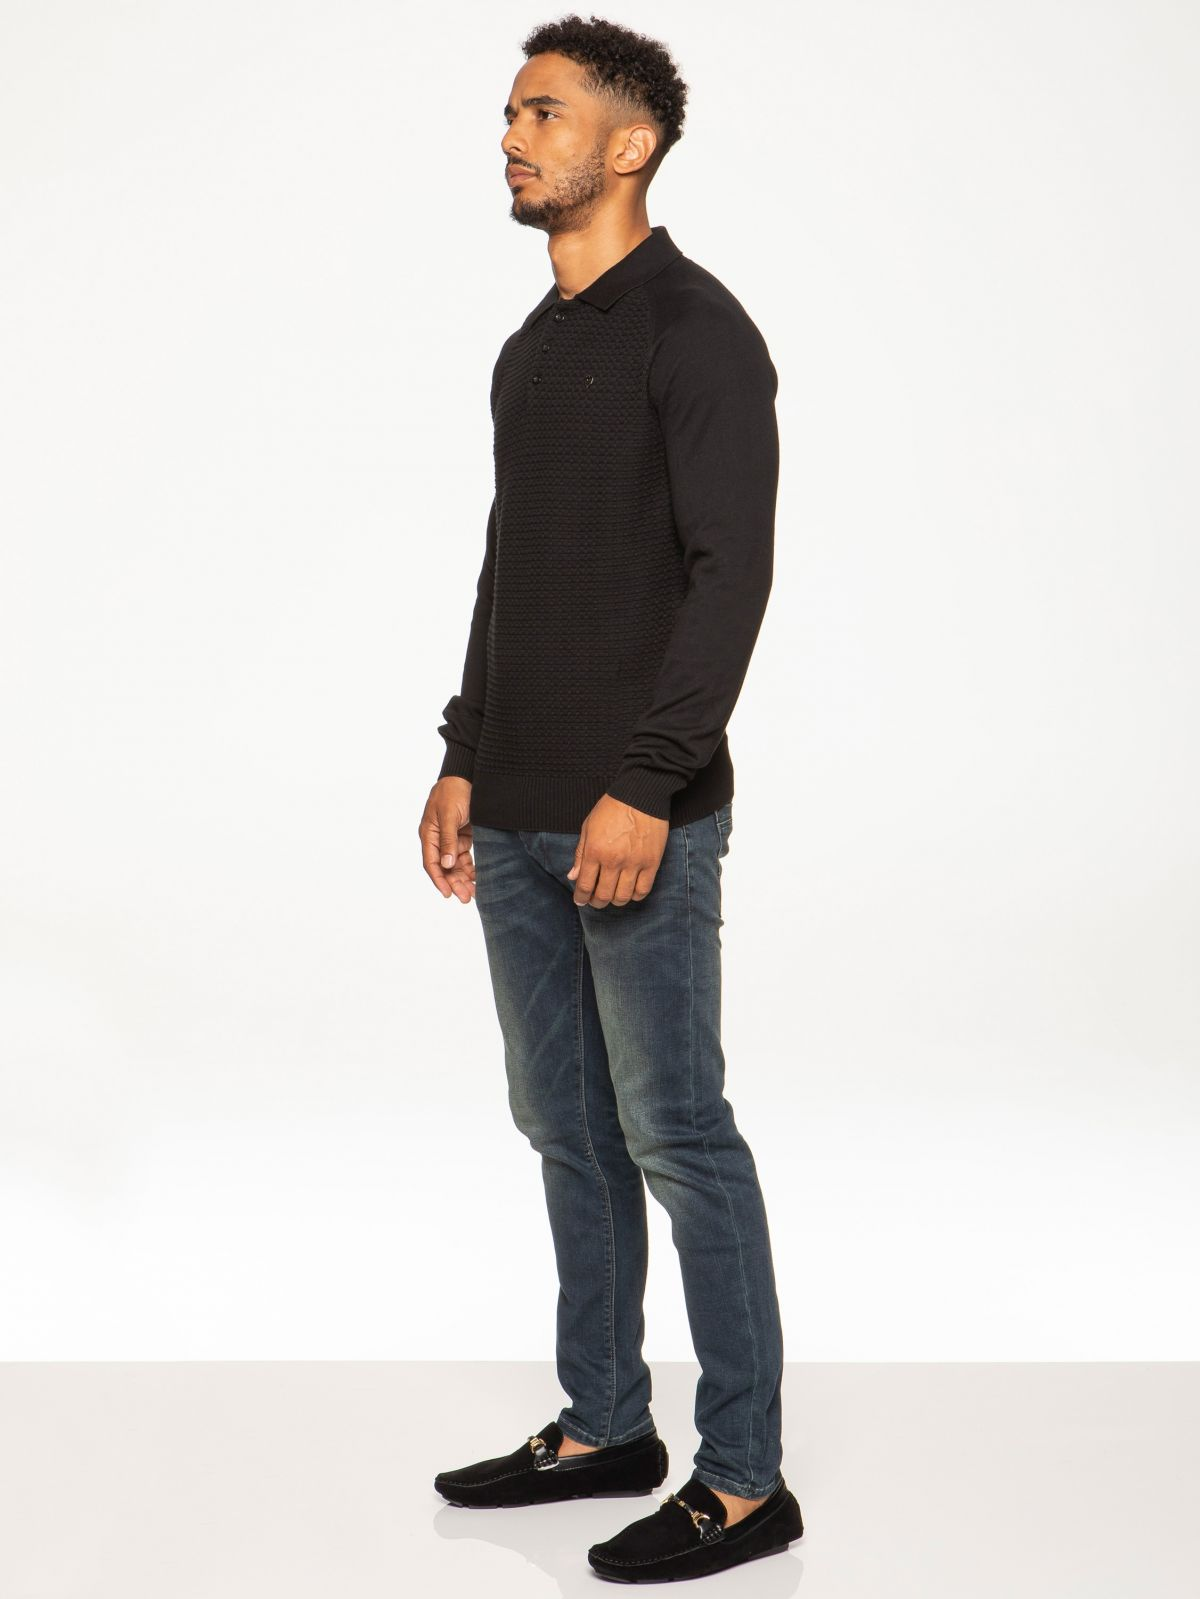 Mens Clothing | Smart Casual Polo Knitwear